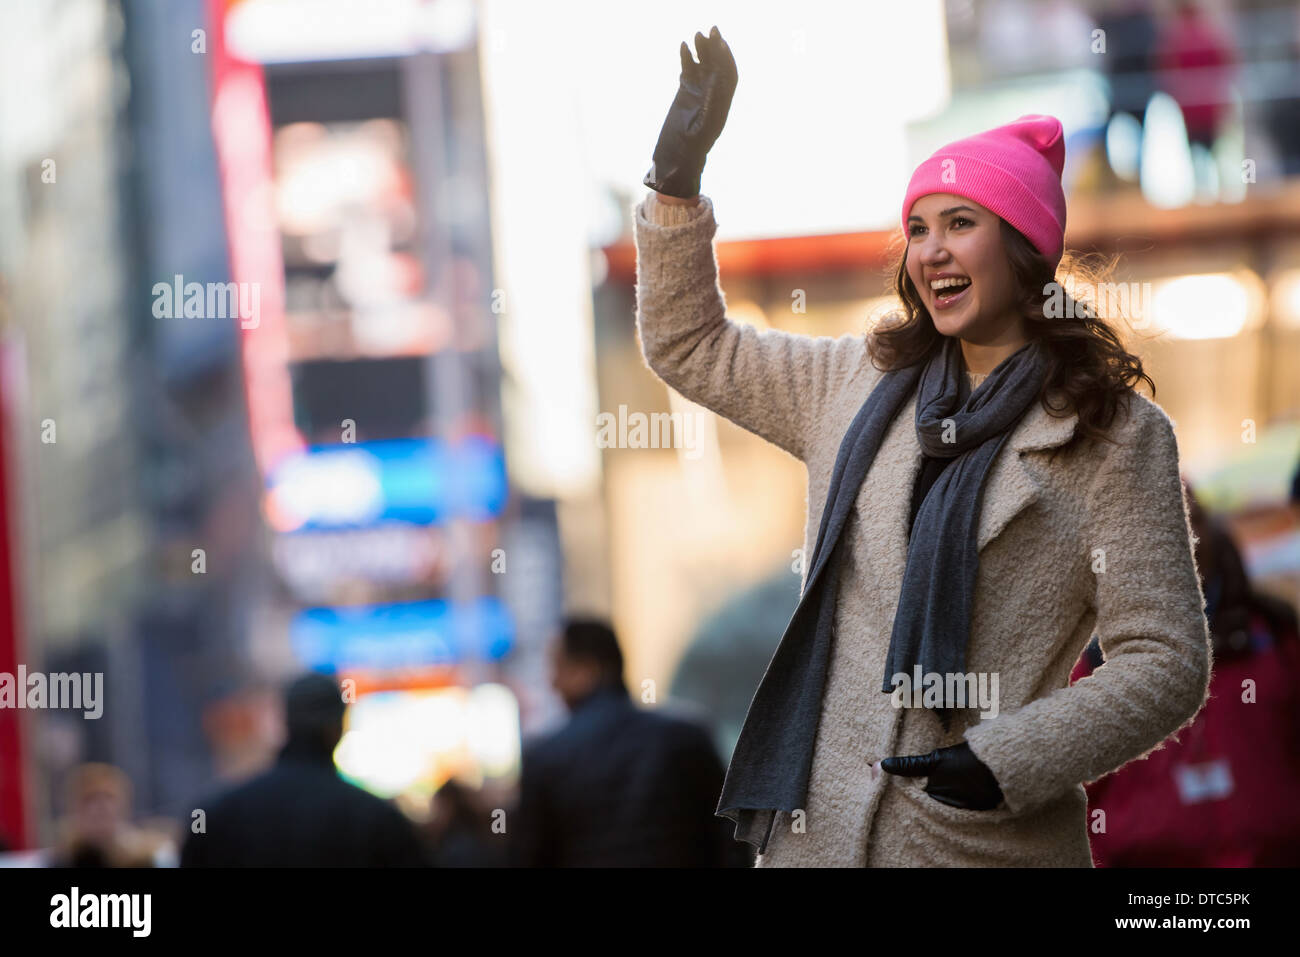 Young female tourist waving from street, New York City, USA - Stock Image